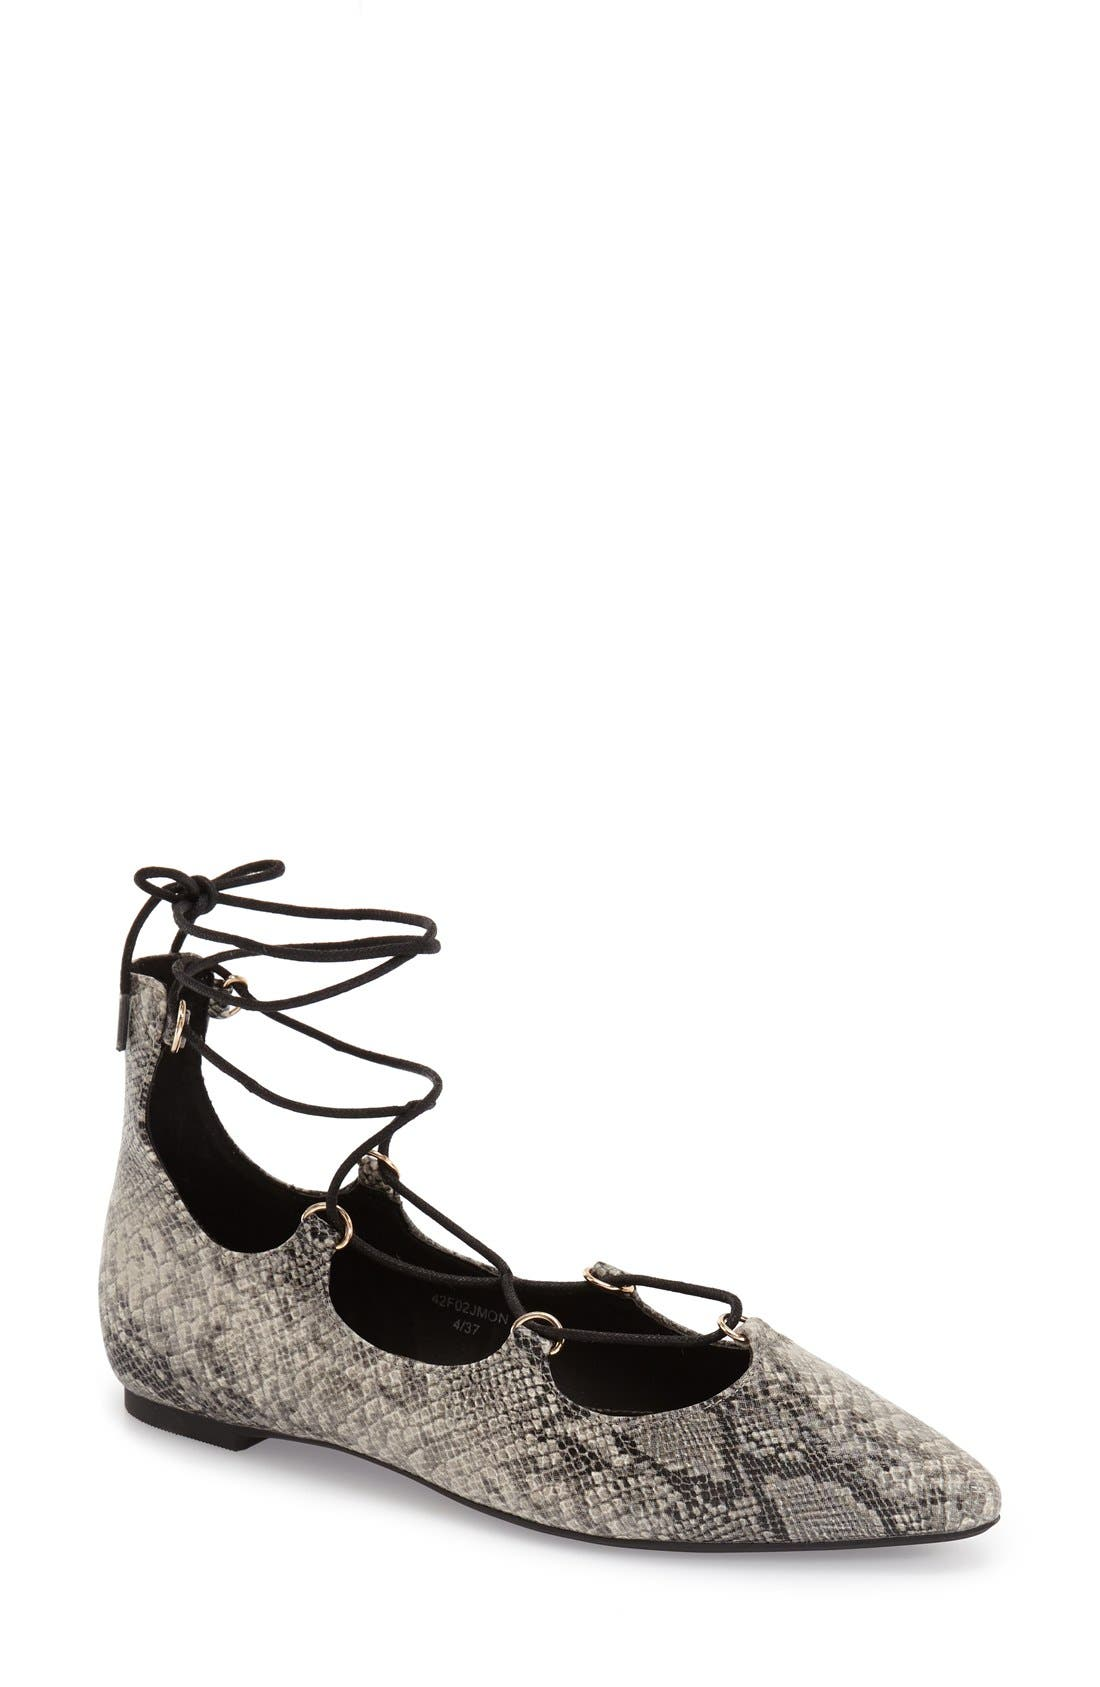 Main Image - Topshop 'Fancy' Pointy Toe Ghillie Flat (Women)